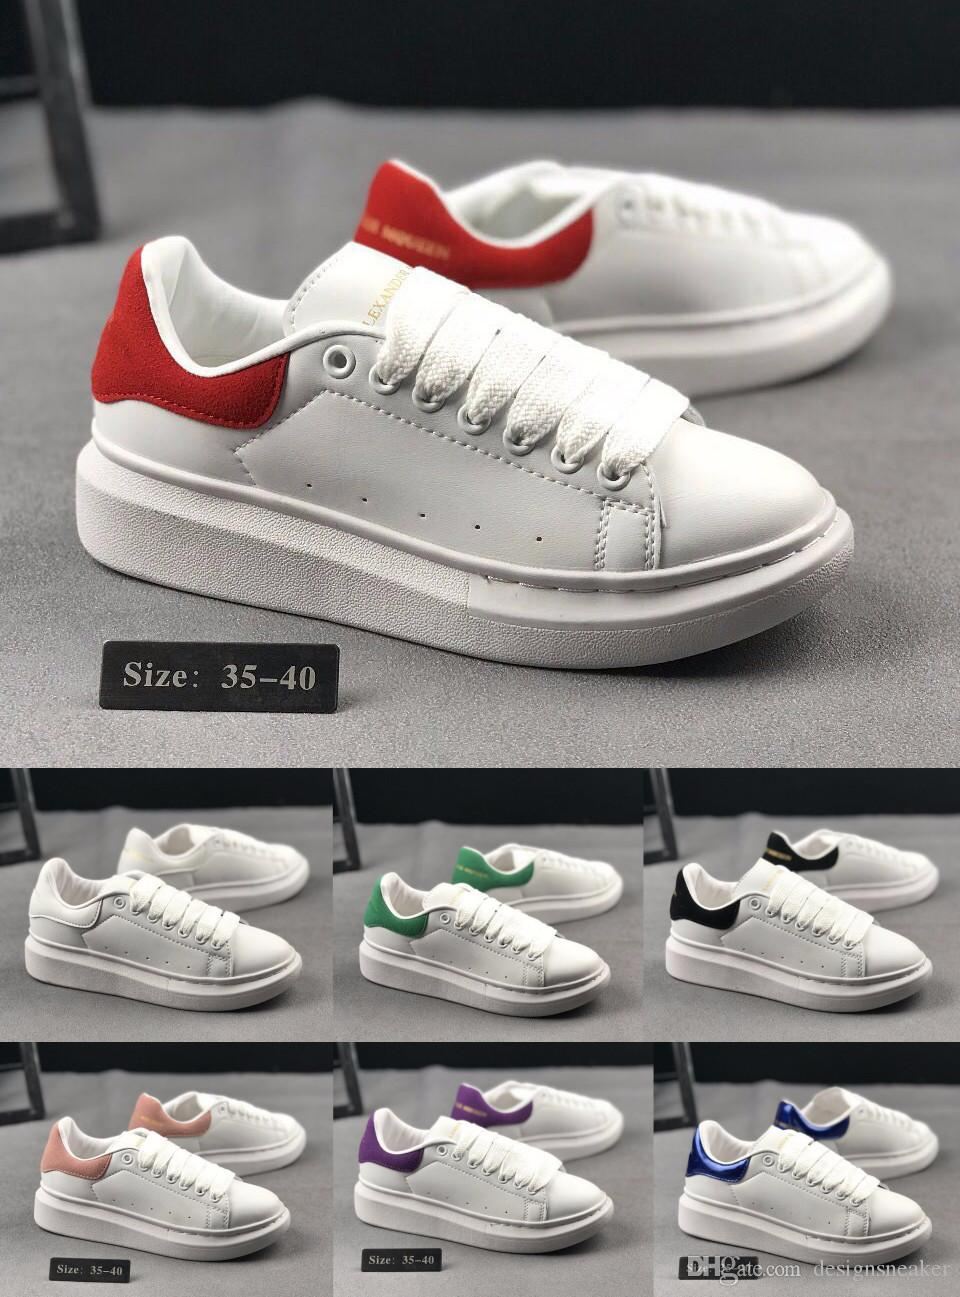 73e2ea6526c 2019 Fashion Luxury Designer Sneakers Women Men Leather Casual Walking  Party Dress Shoes Sneaker Top Quality